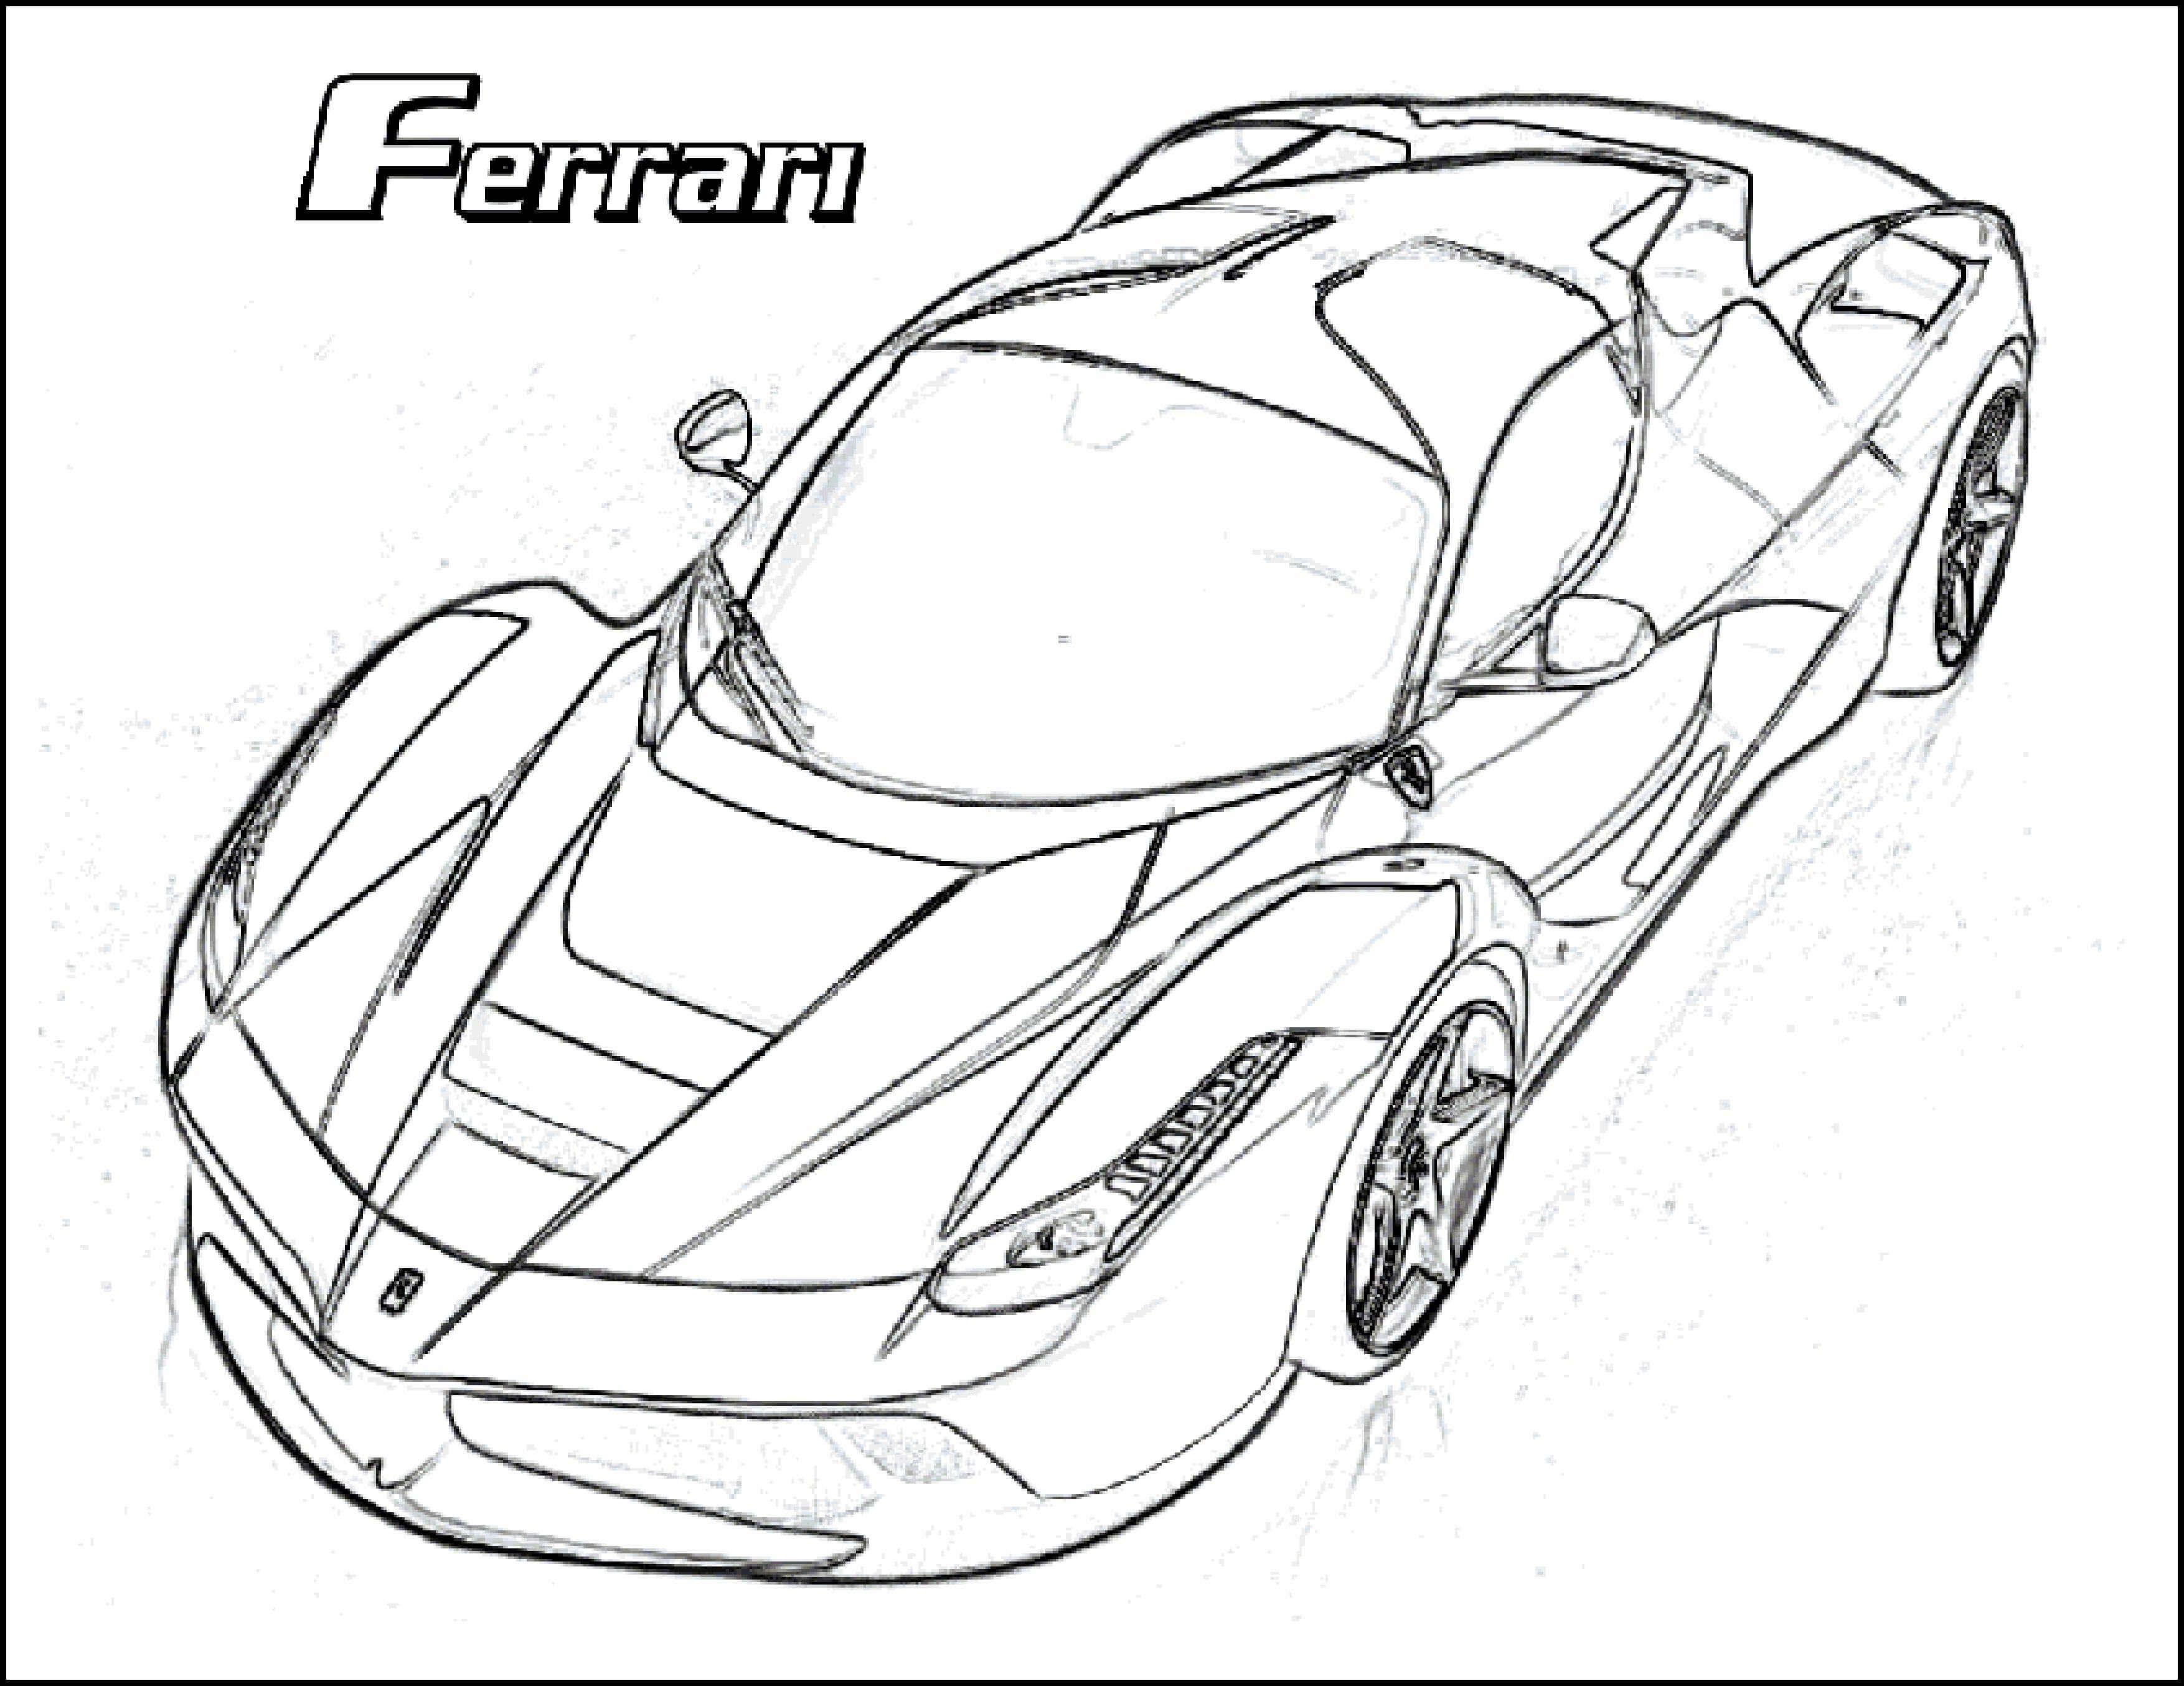 Best Sport Car Coloring Pages In Hd Resolution에 있는 Miranda